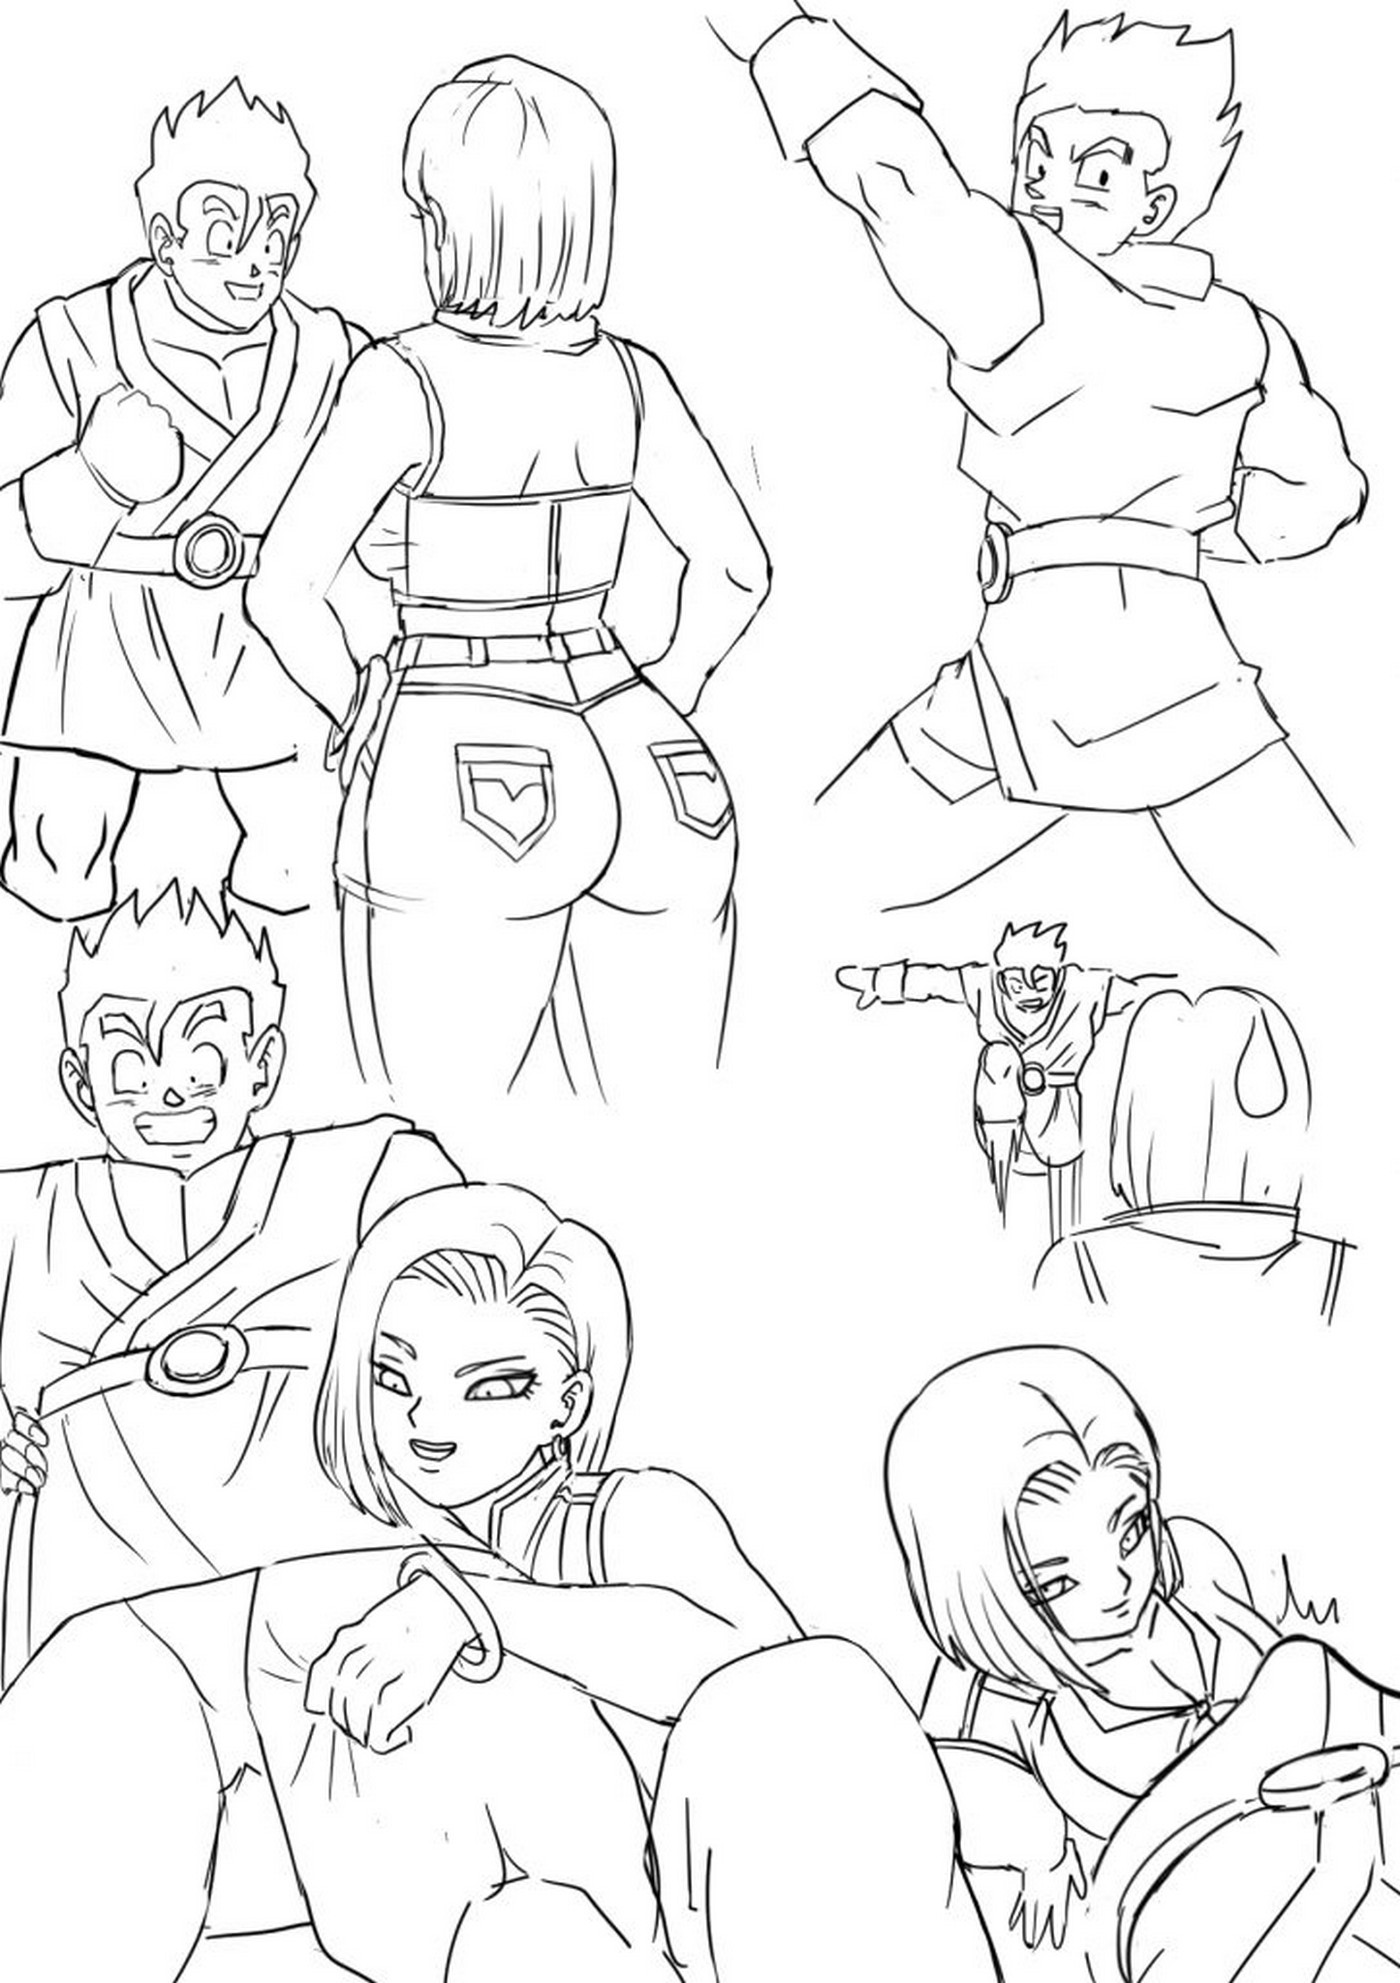 Android Ntr 18 Ep 3 Pink Pawg 07